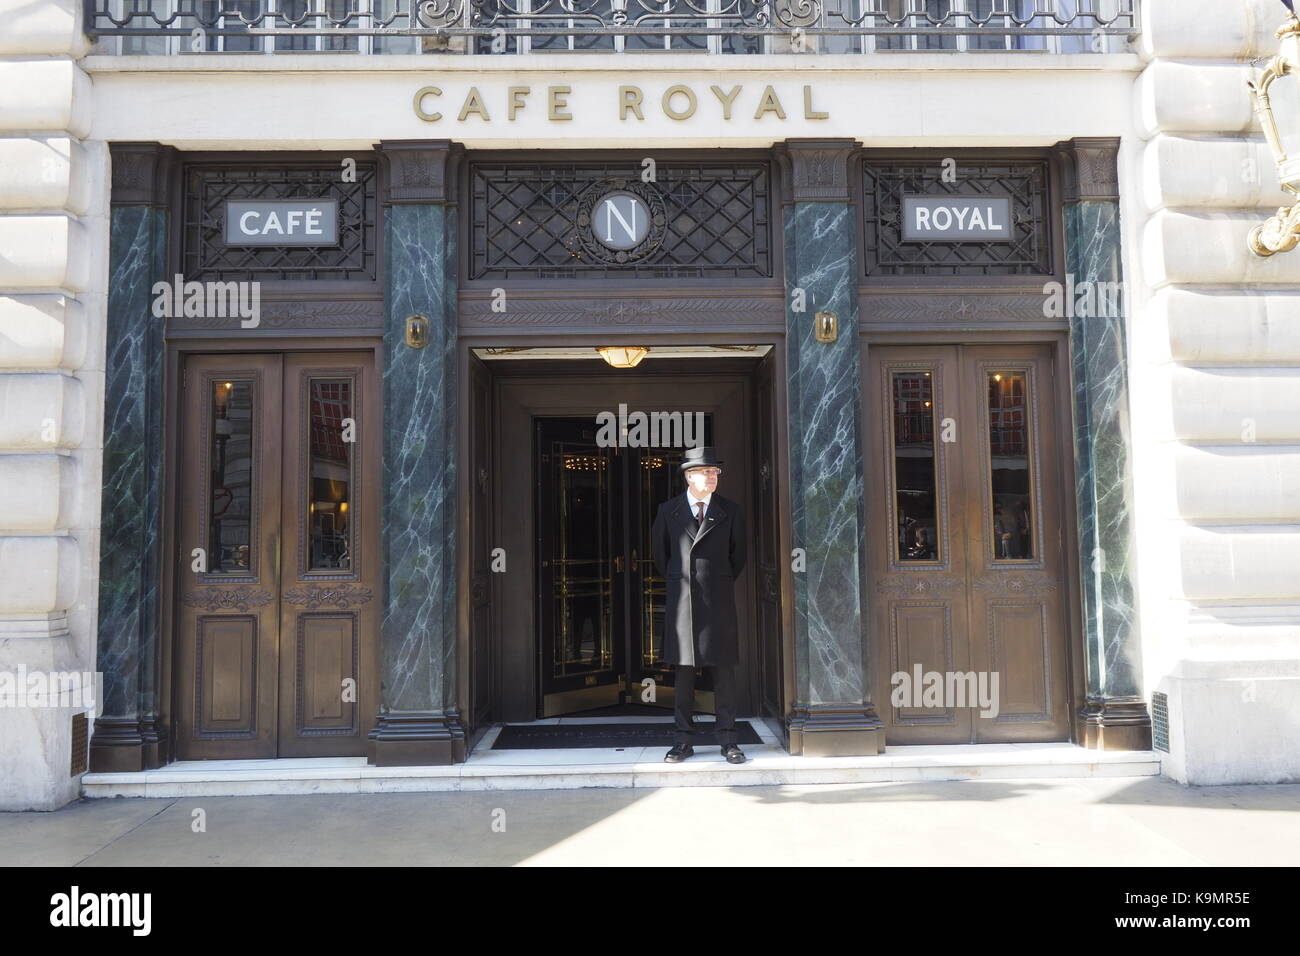 Café Royal entrance in Regent Street - Stock Image